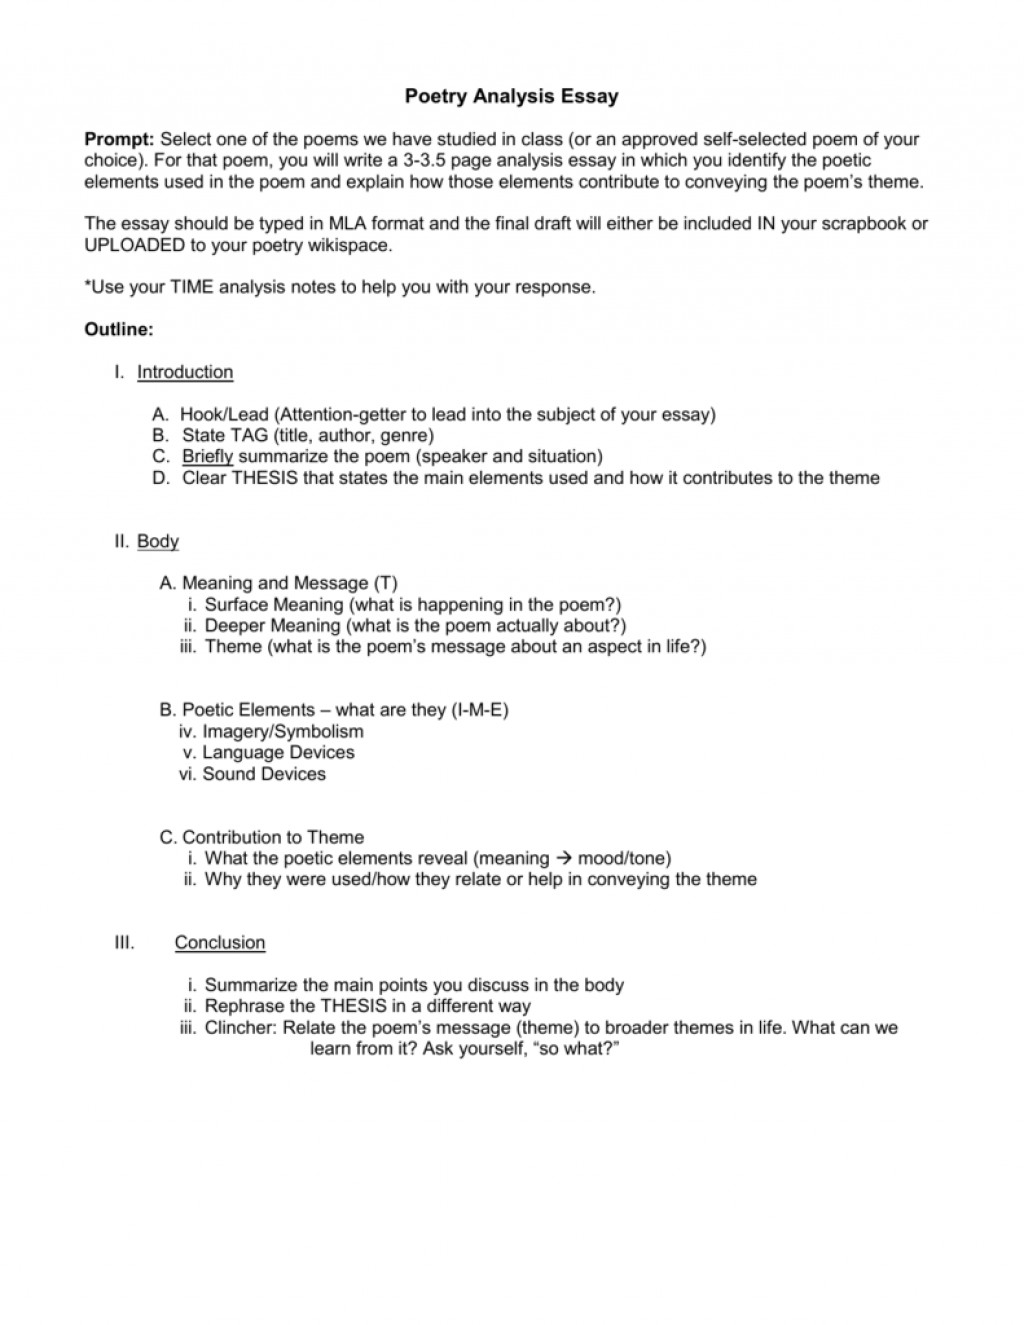 003 Essay Example 007600325 2 Poem Formidable Critique Analysis Introduction Outline Template Large